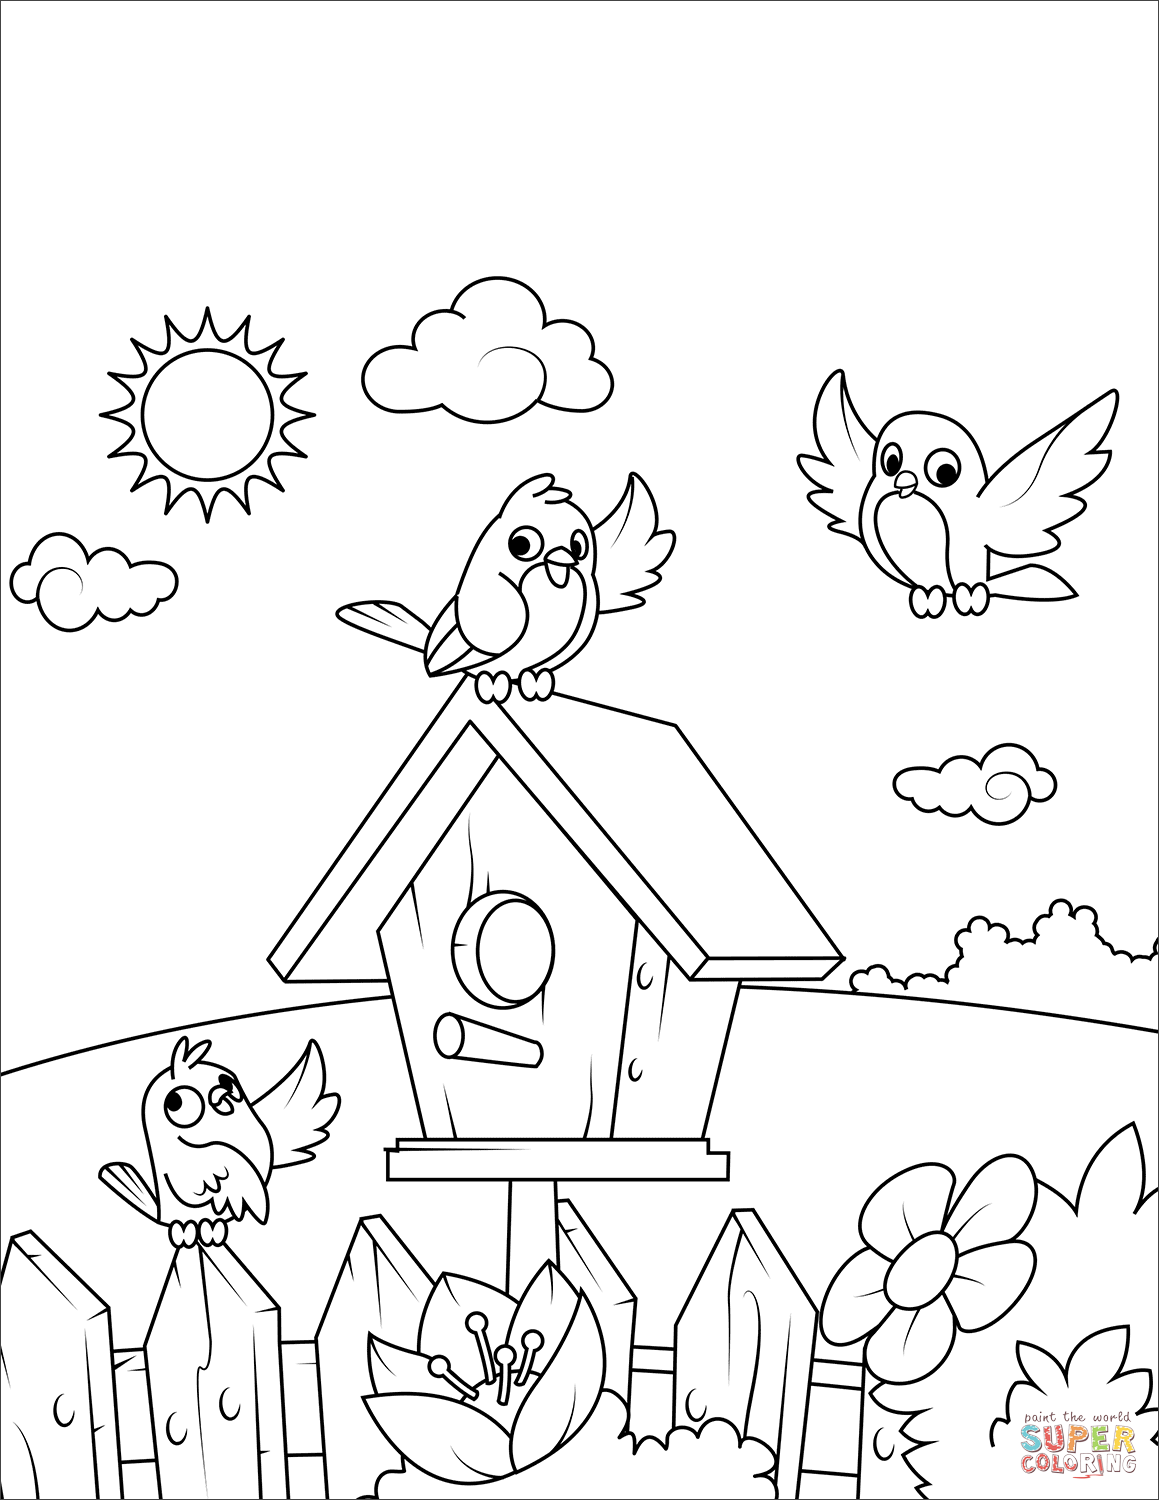 Birds Near A Birdhouse Super Coloring Bird Coloring Pages Spring Coloring Pages Cute Coloring Pages